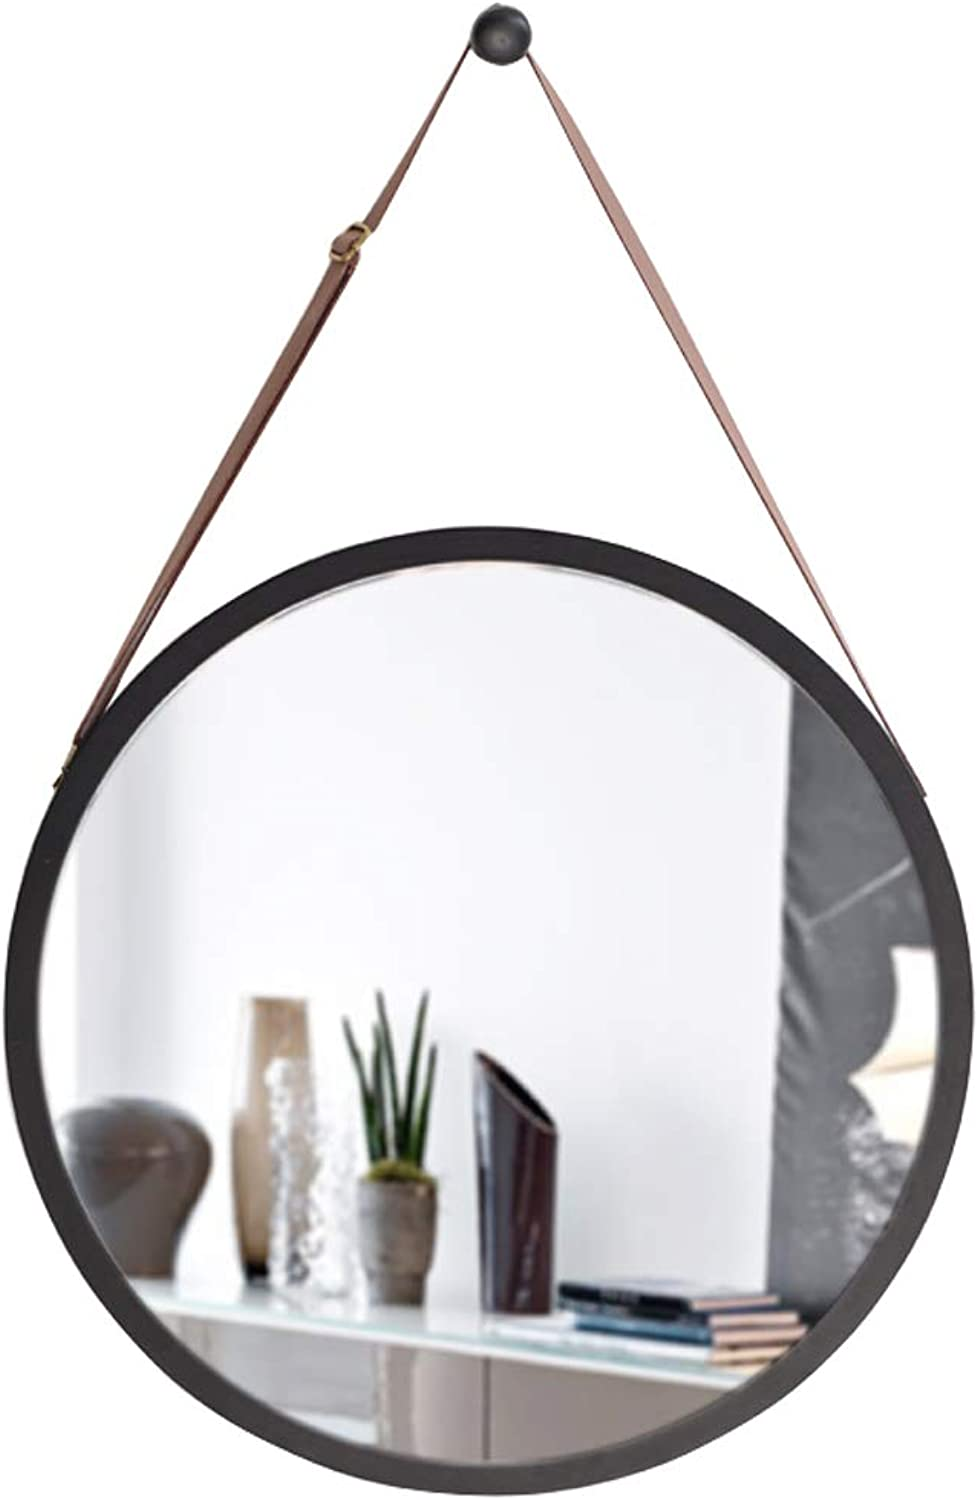 Contemporary Wall Mirror with Adjustable Hanging Strap   Bamboo Framed   Vanity Mirror Wall Decor (15″ 17.7″)